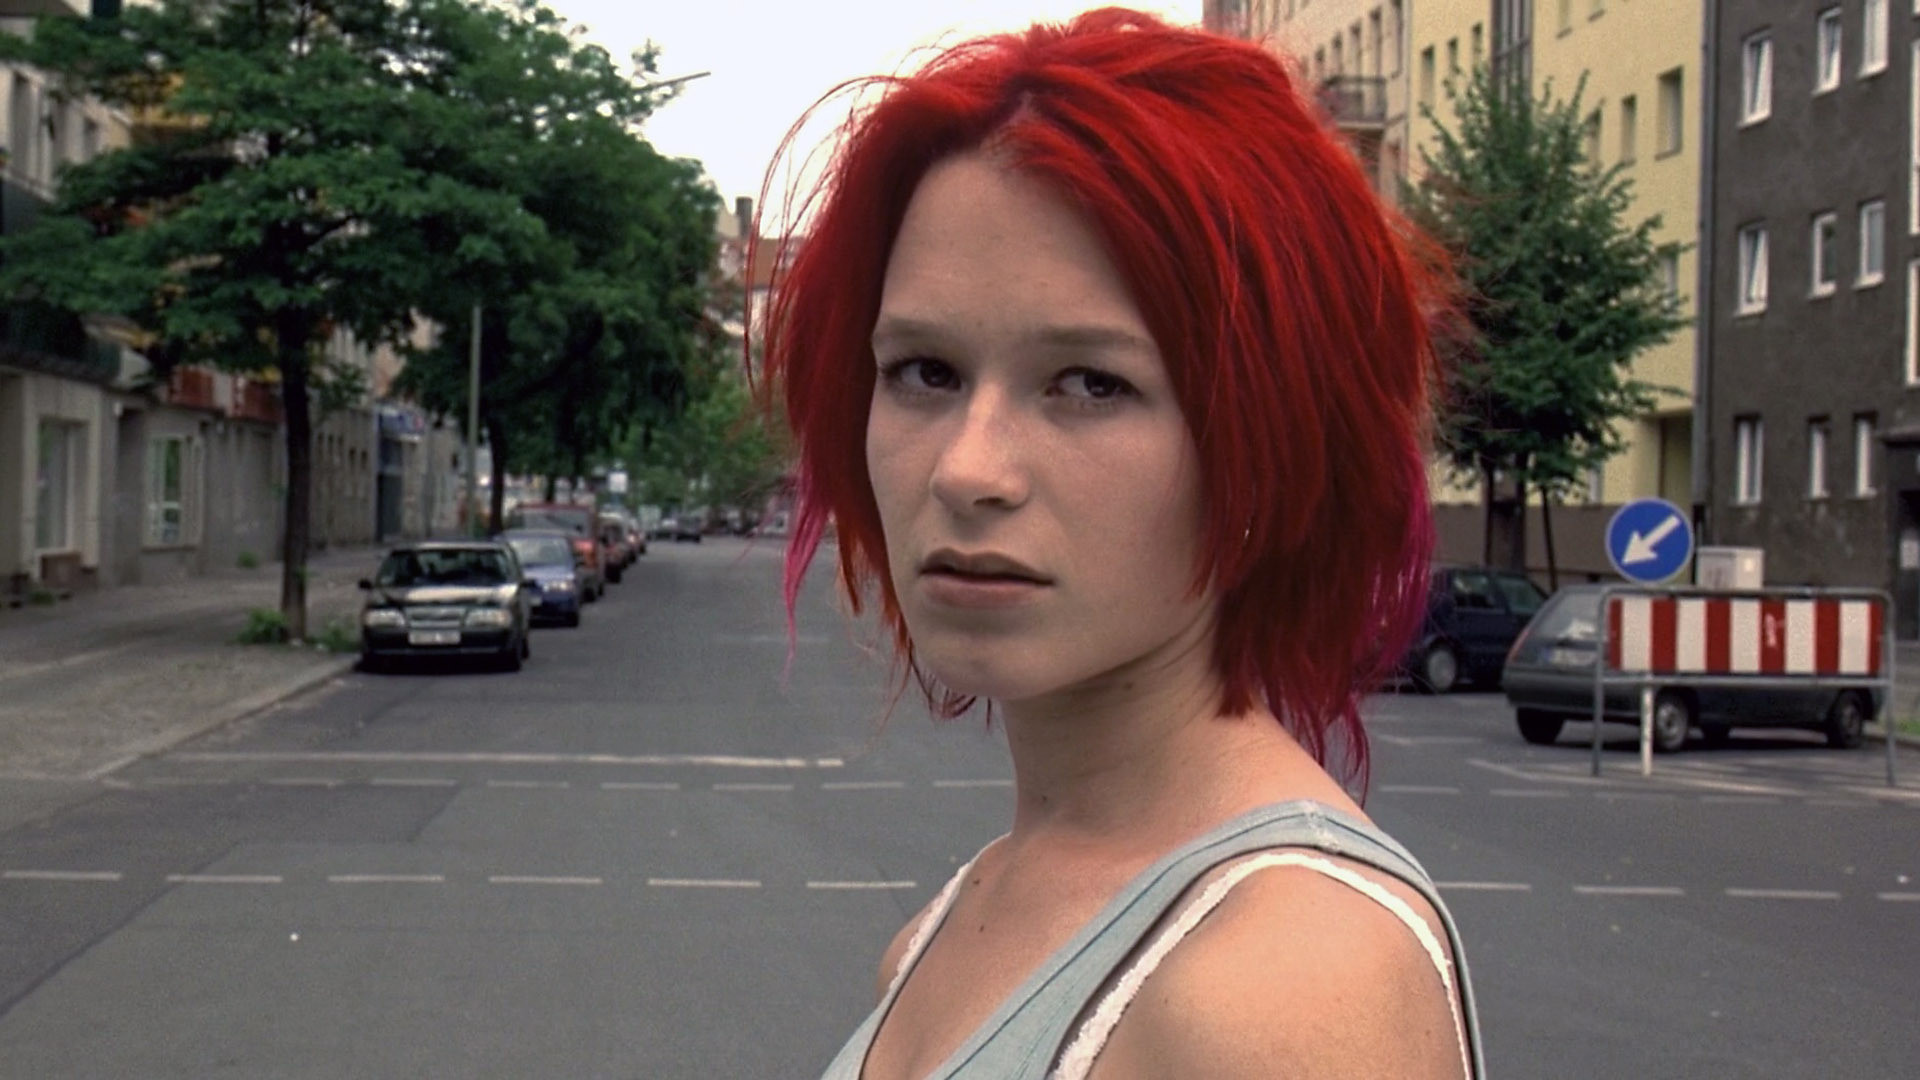 run lola run essay lola run distinctively visual essays middot great postmodernist films that are worth your time taste of kohlviews wordpress com